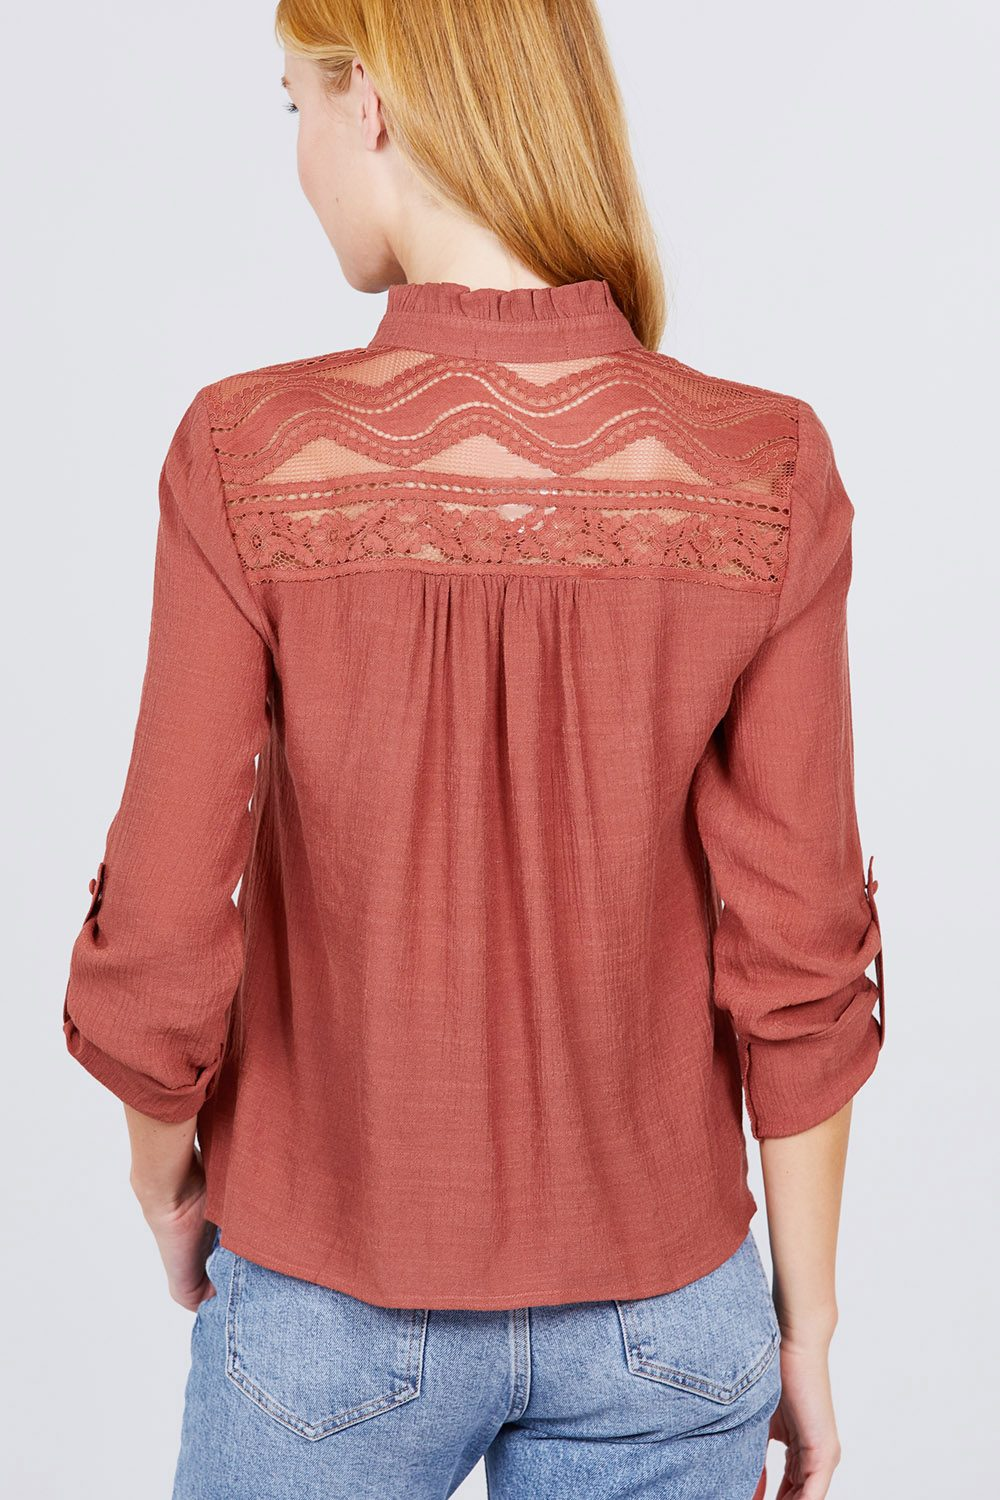 Button Down space Back Woven Top